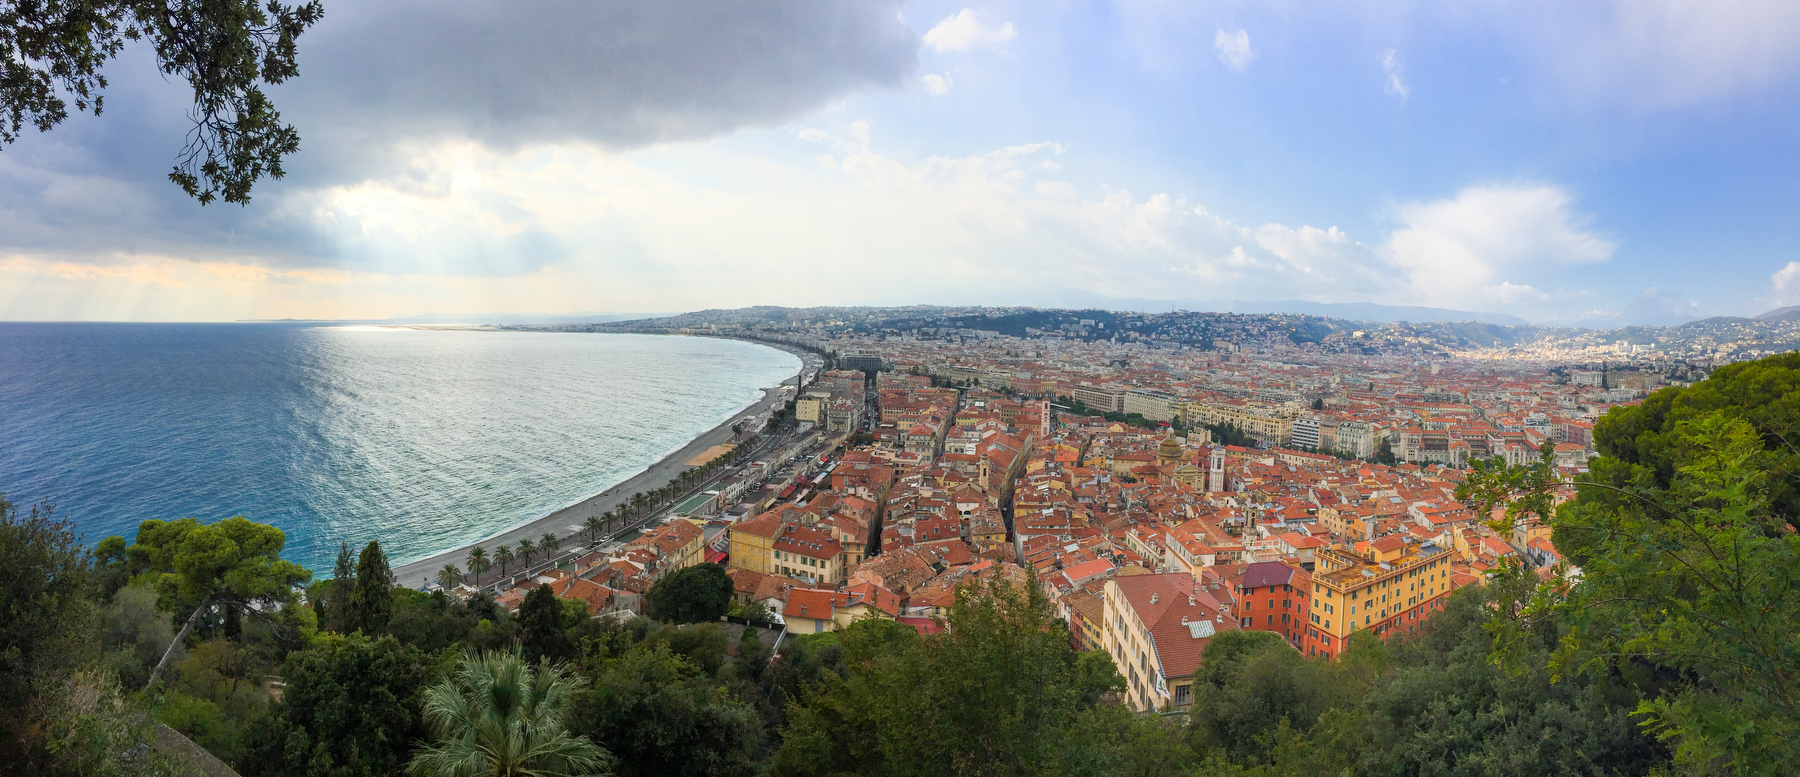 The view of Nice from it's highest peak.